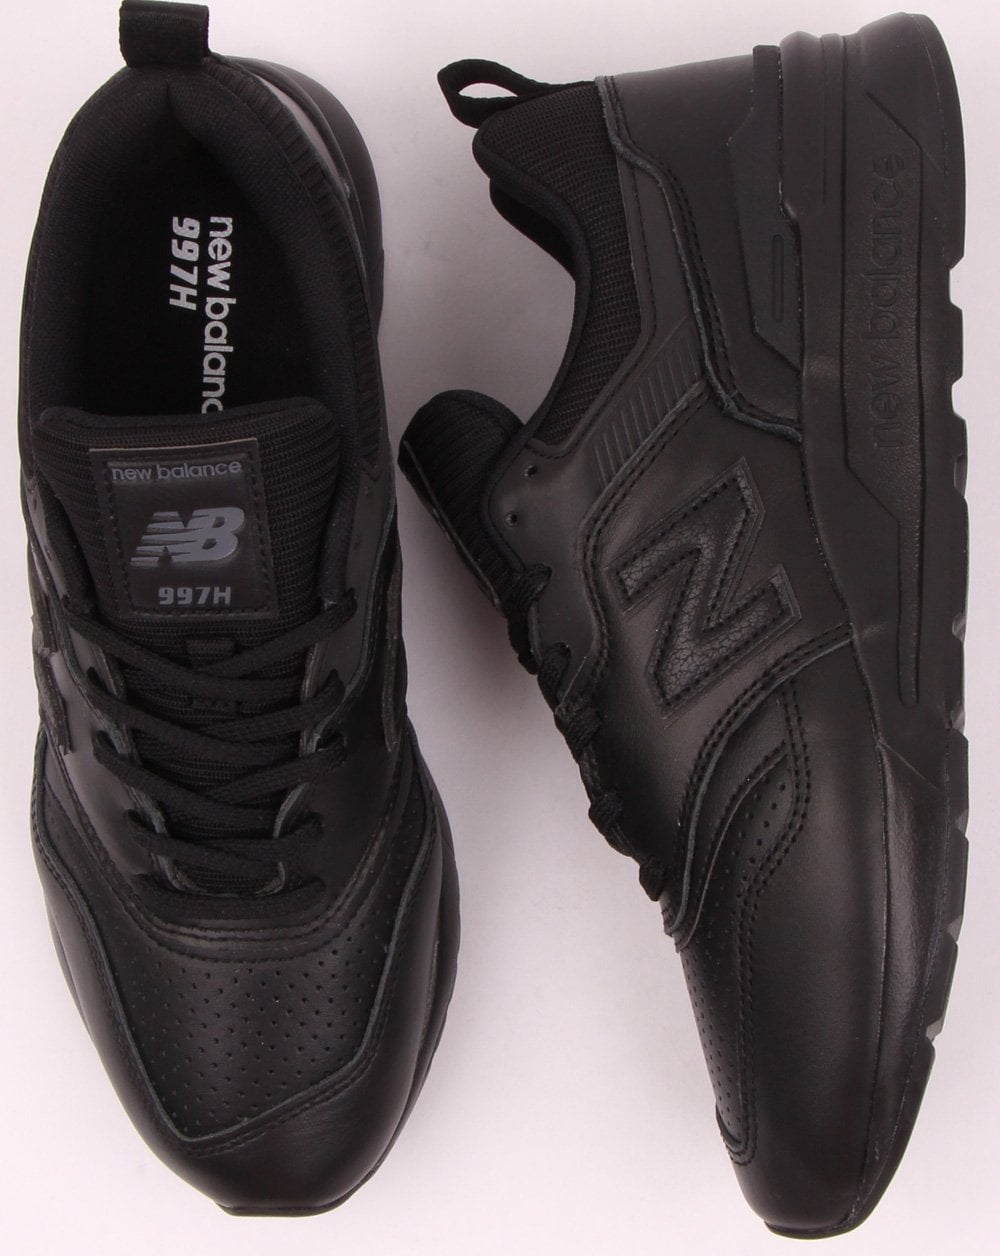 New Balance 997 Leather Trainers Black